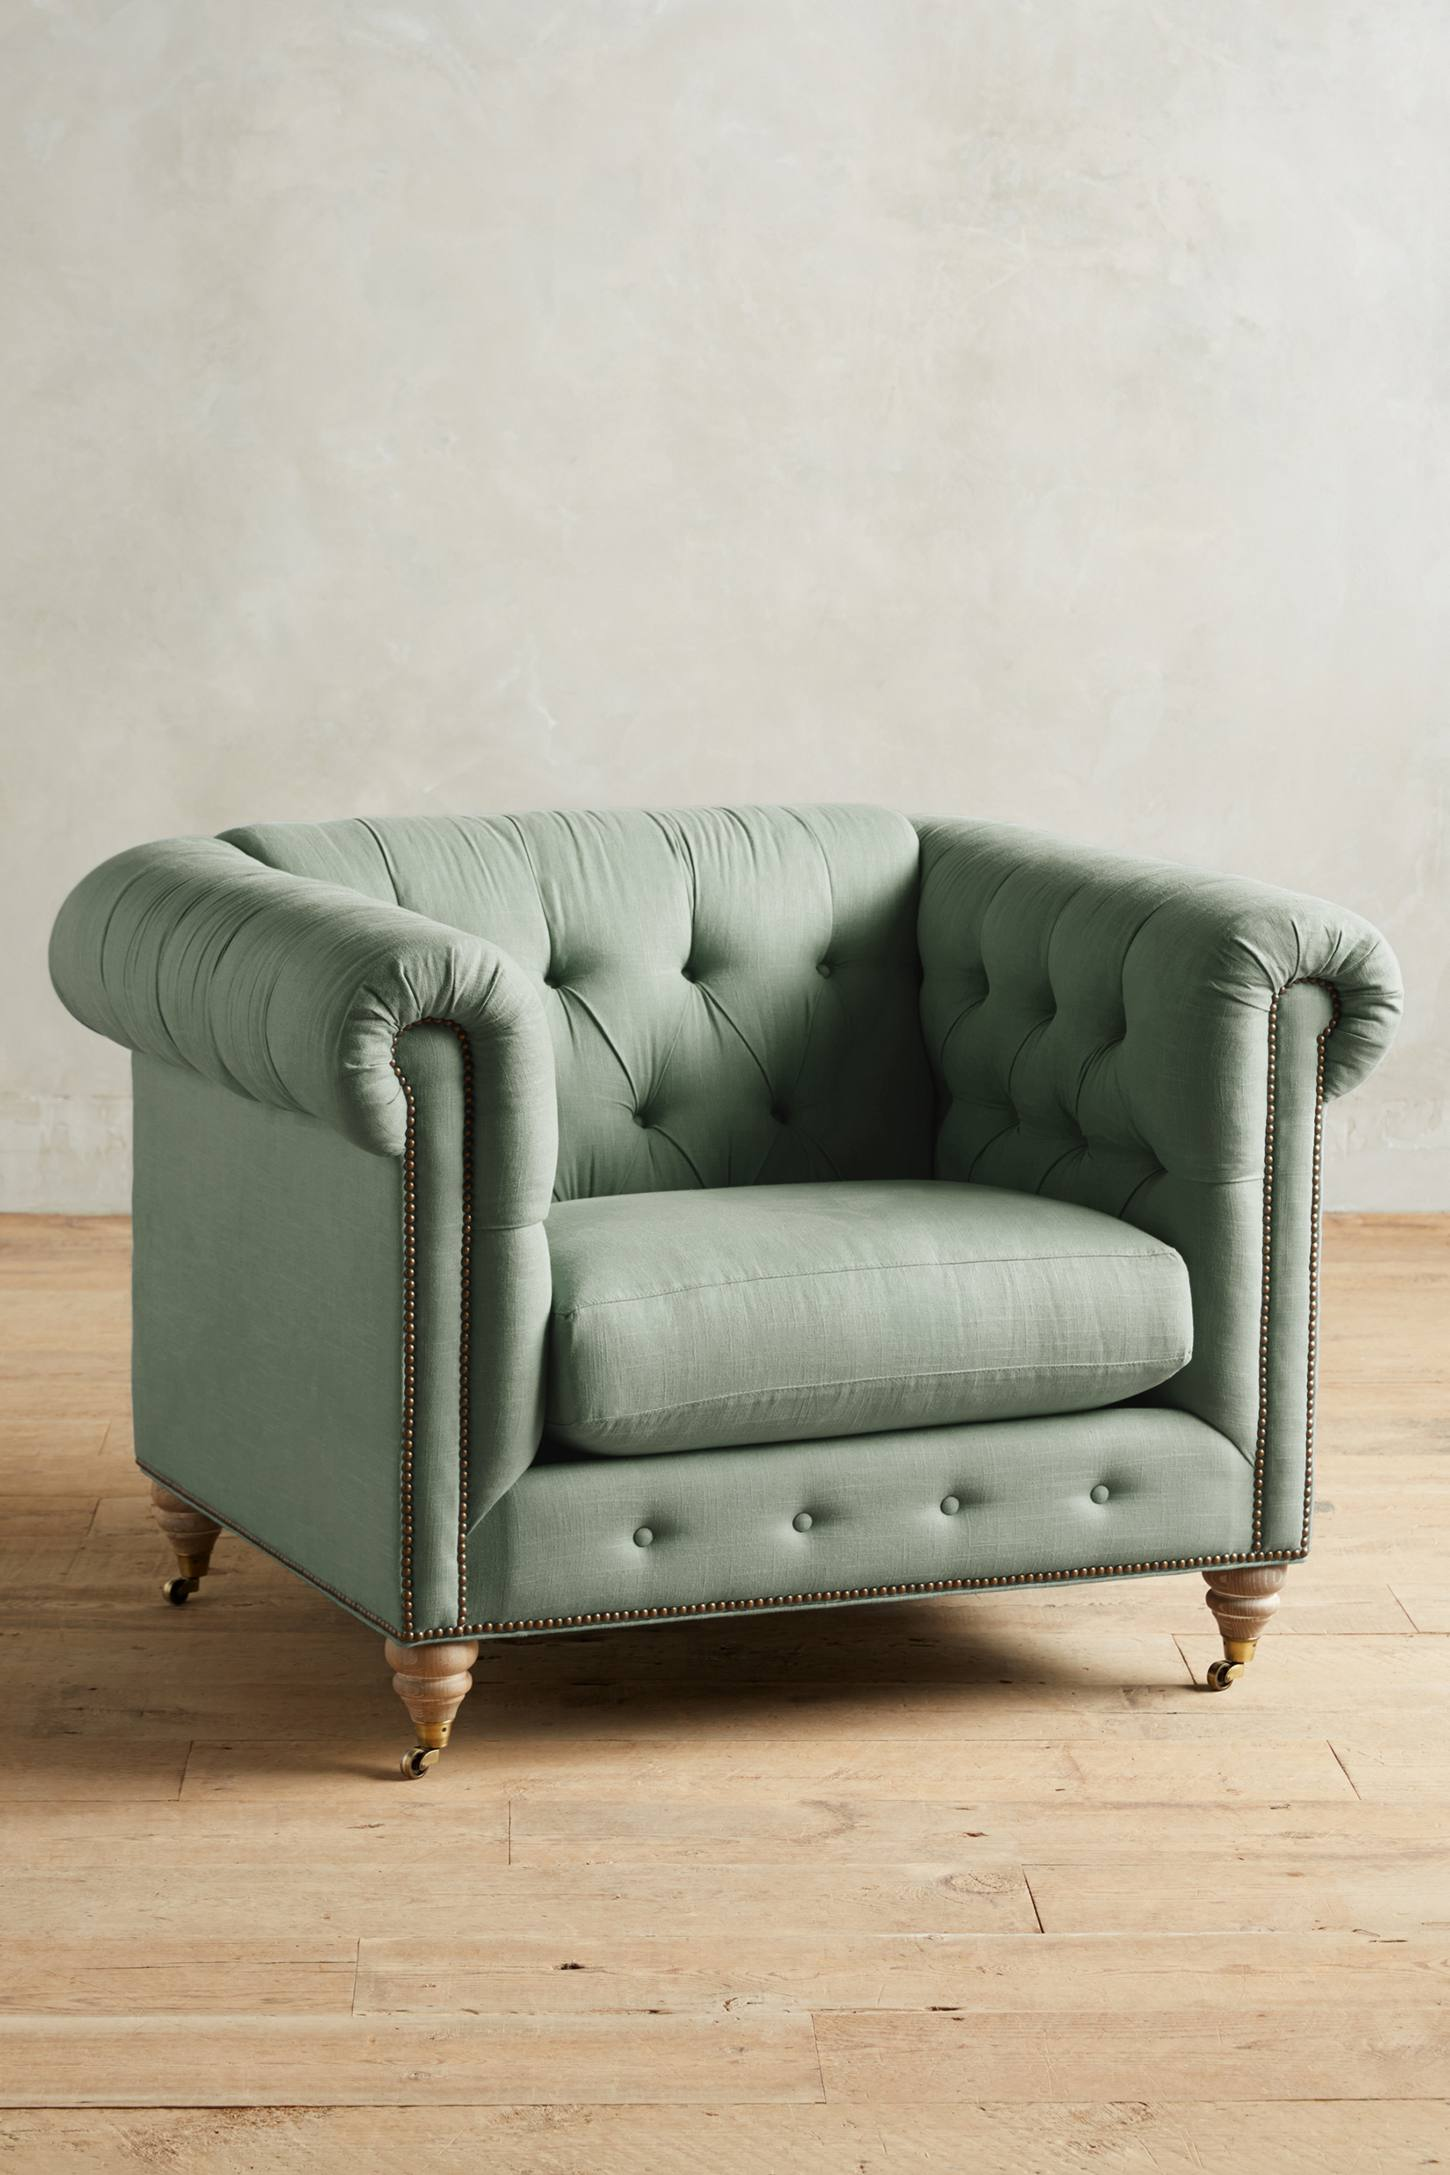 Slide View: 1: Belgian Linen Lyre Chesterfield Armchair, Wilcox